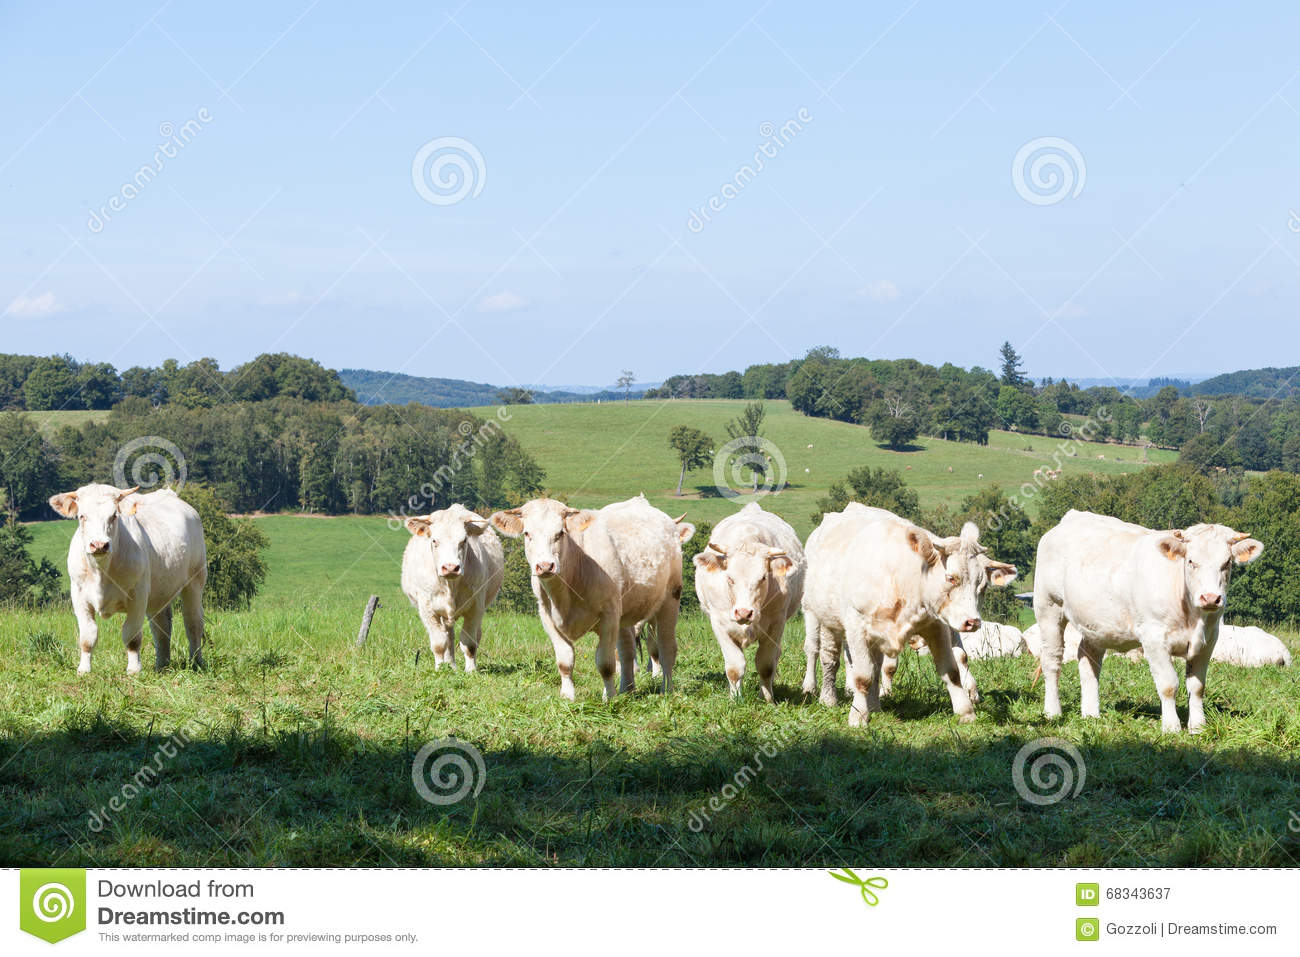 Herd of curious white Charolais beef cattle in a hilltop pasture